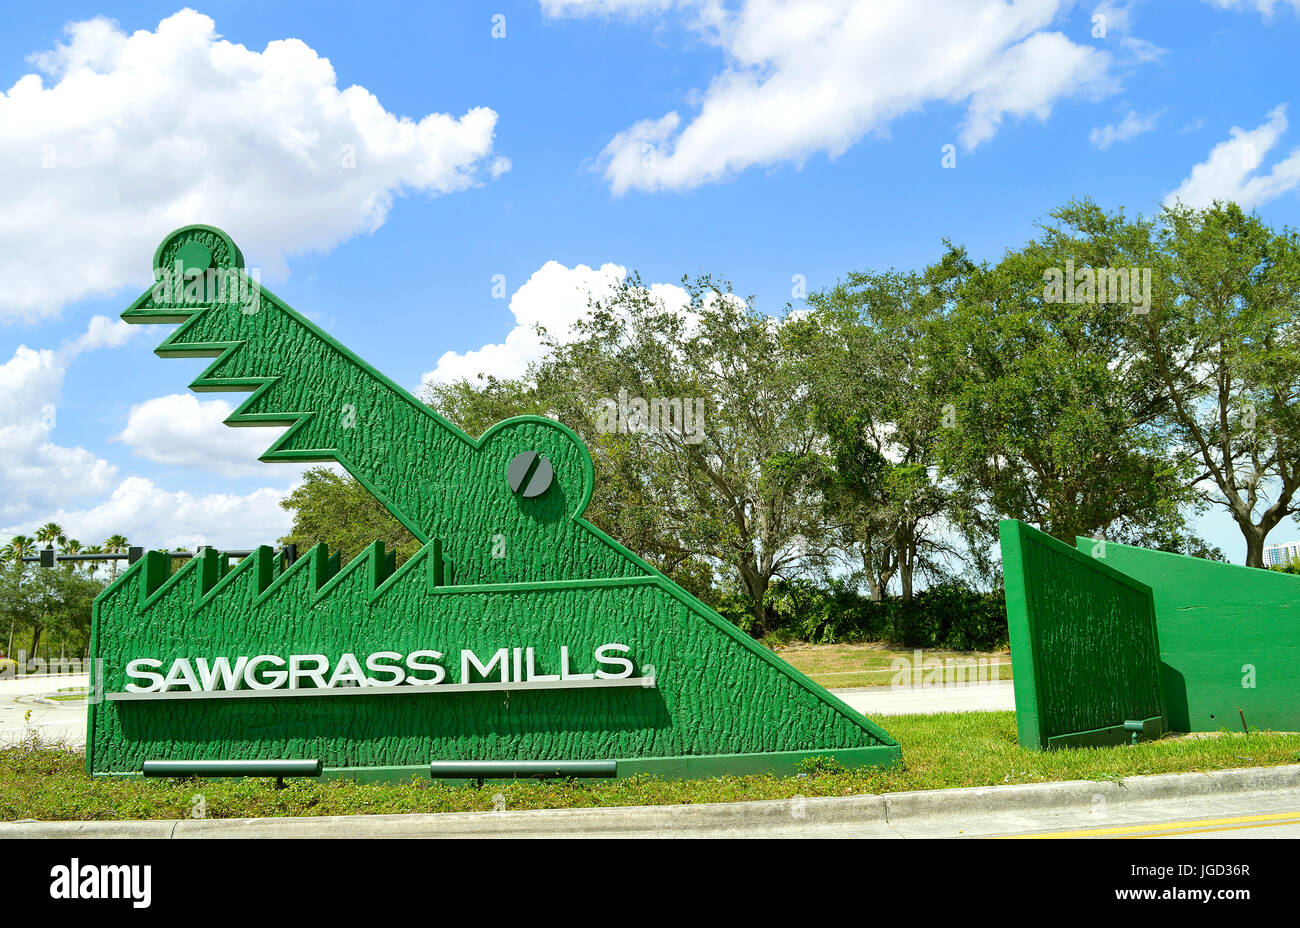 Sawgrass Mills sign at the entrance to the shopping mall - Stock Image